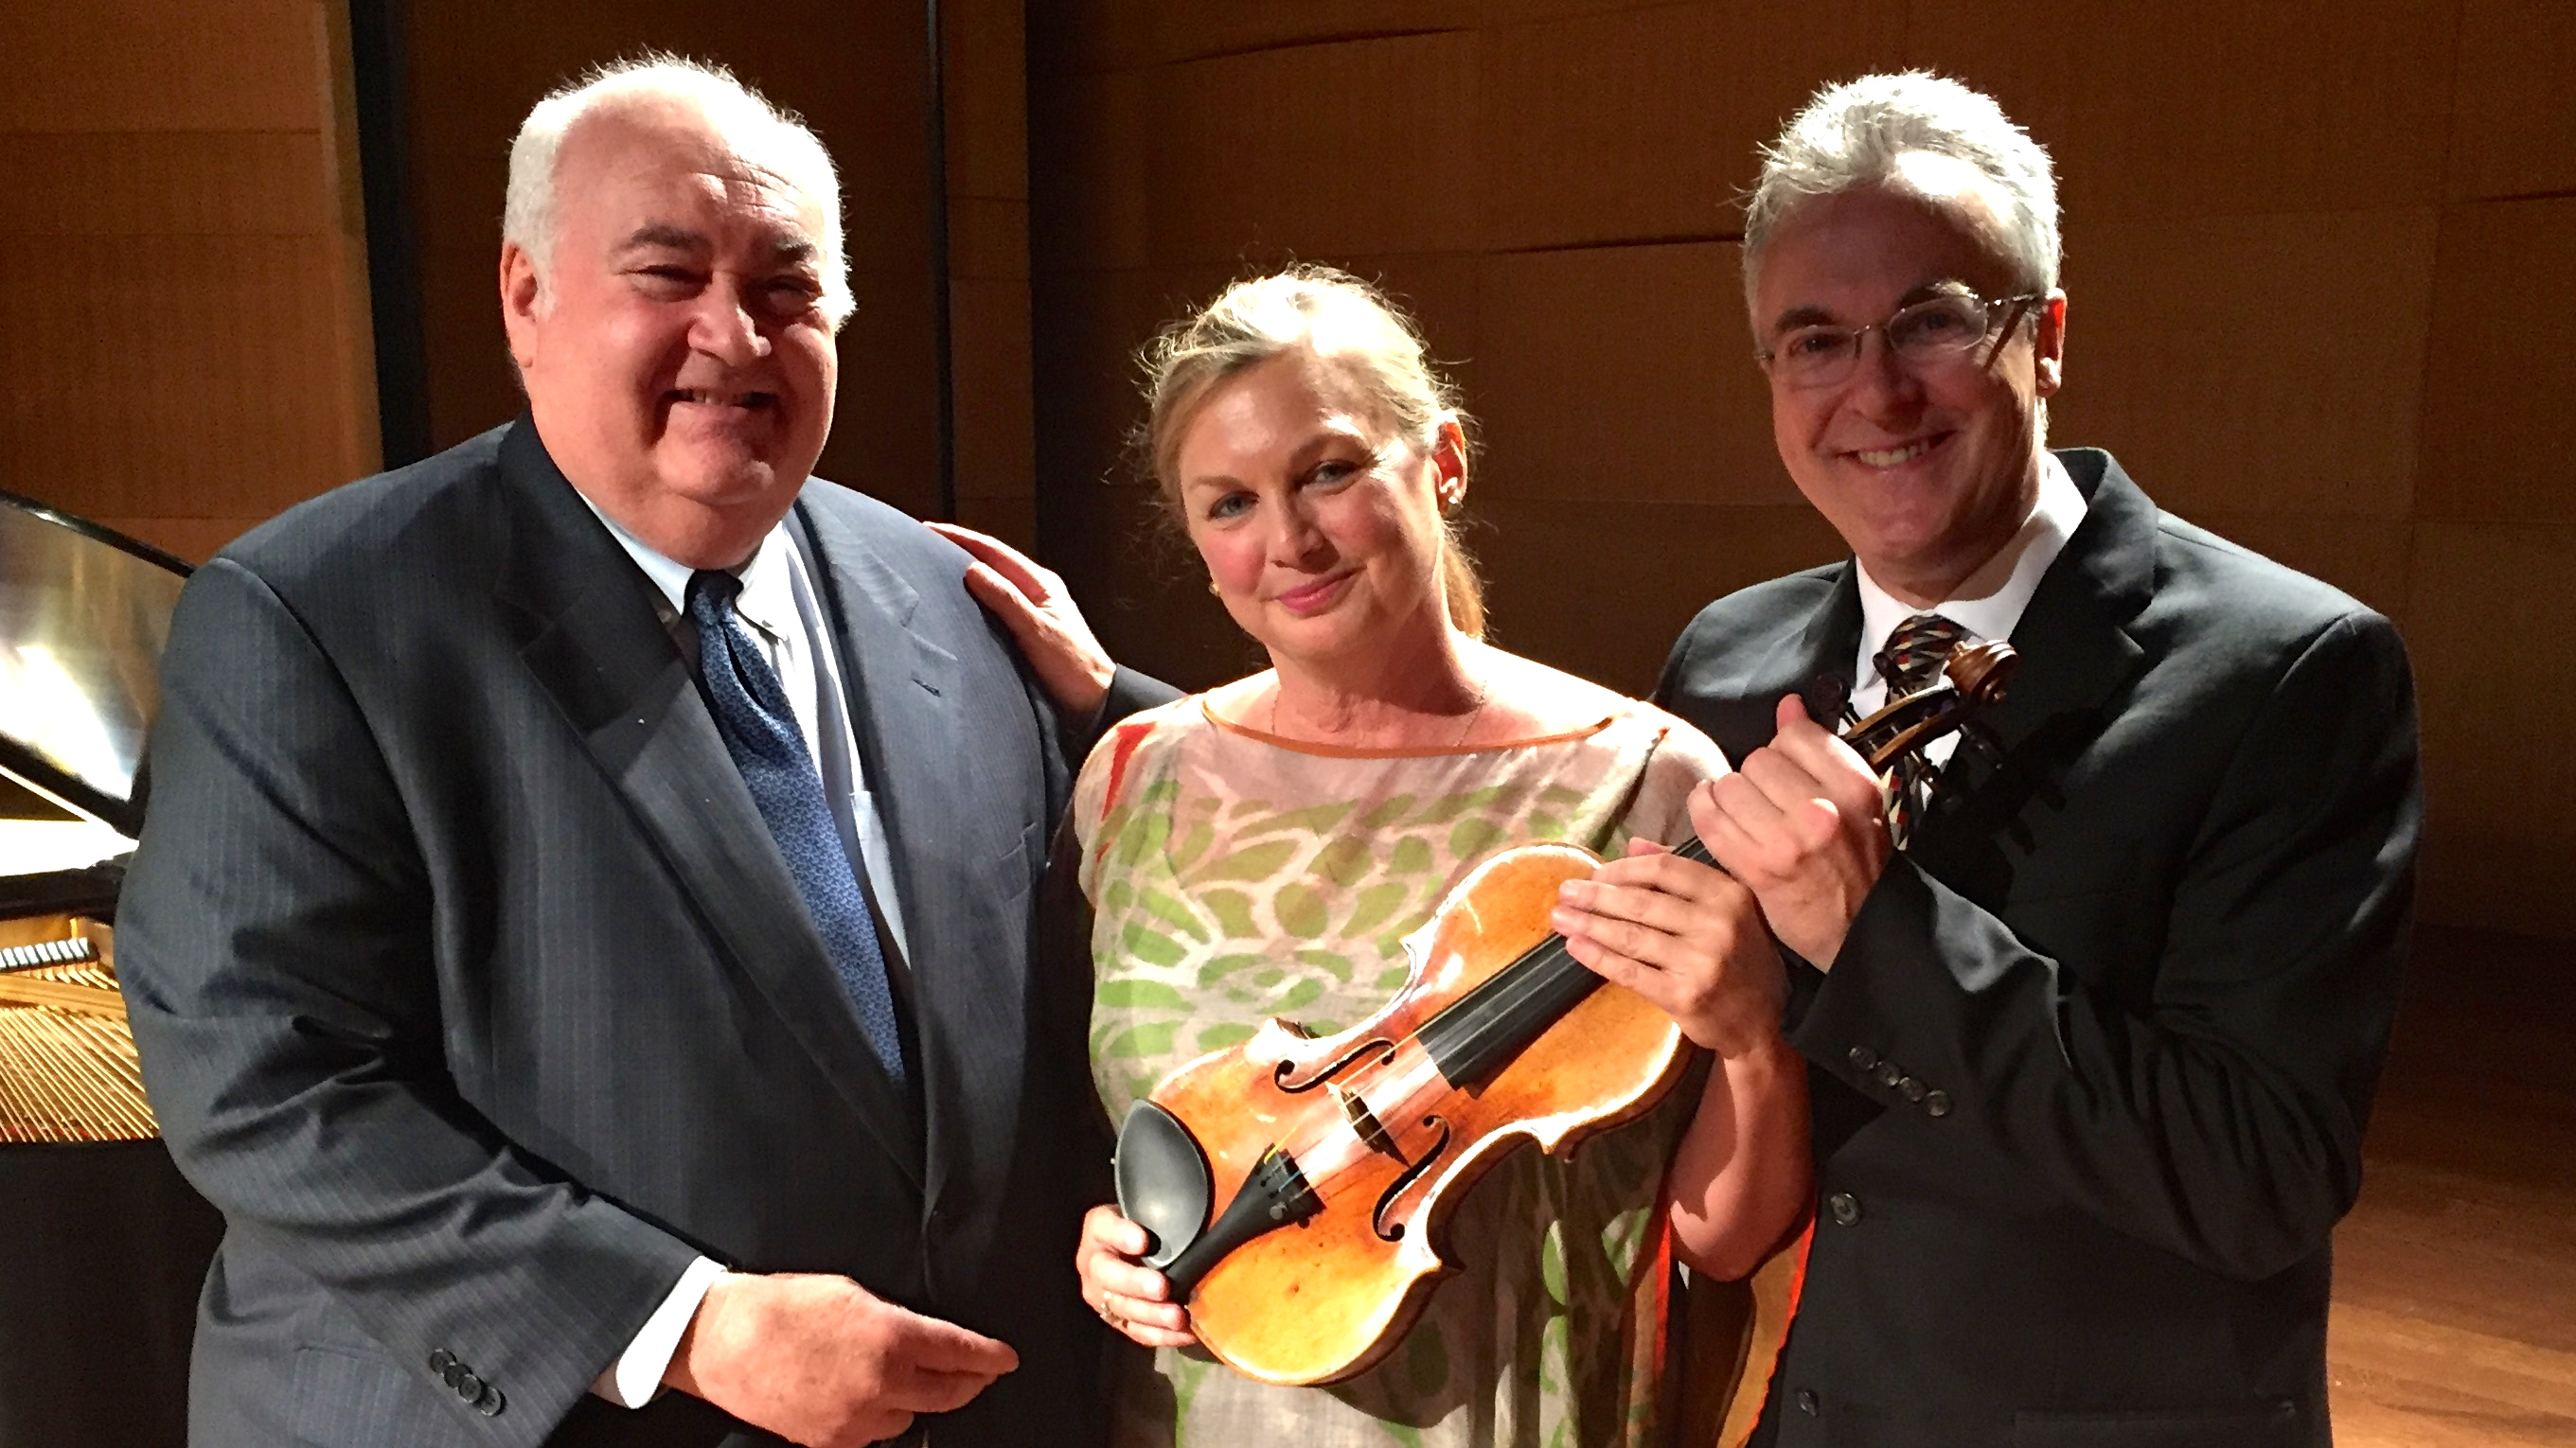 Happy 300th Birthday to the 'Milstein' Stradivarius! border=0 align=